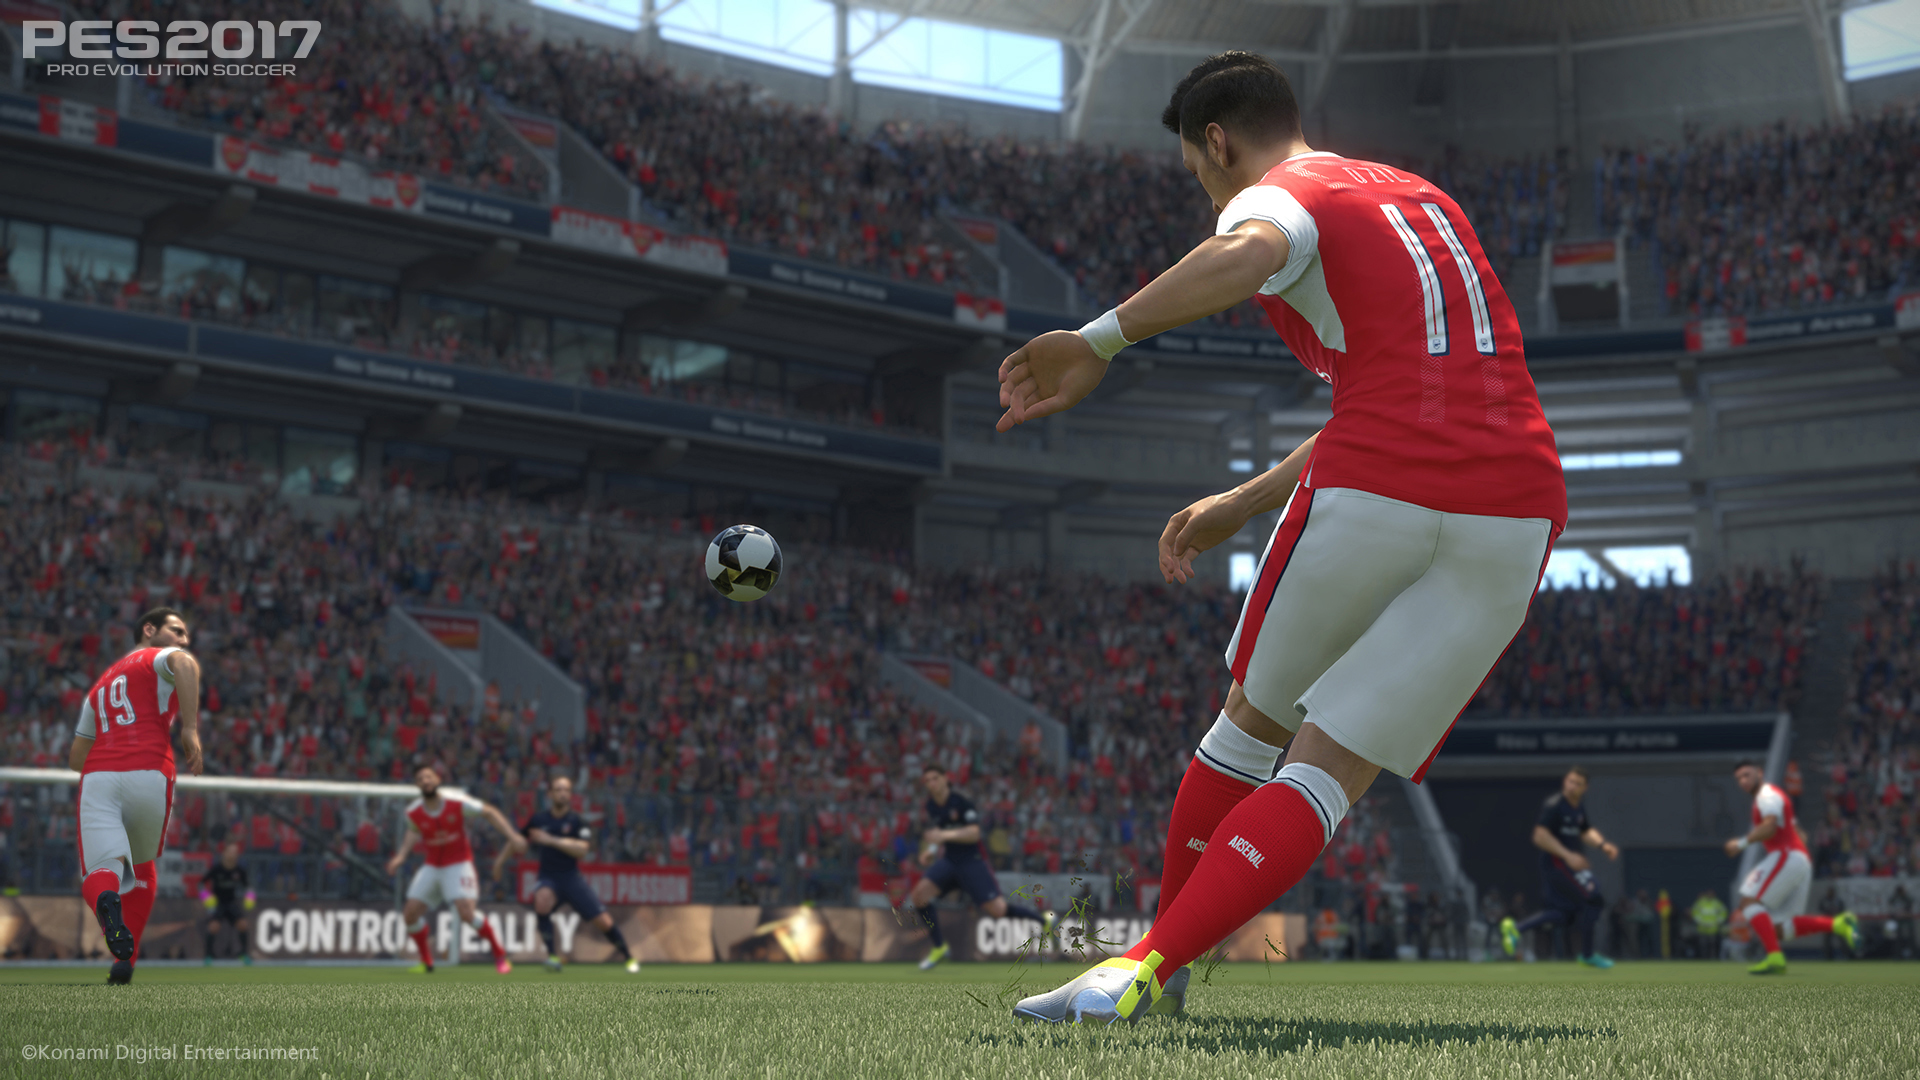 pes 16 demo free download